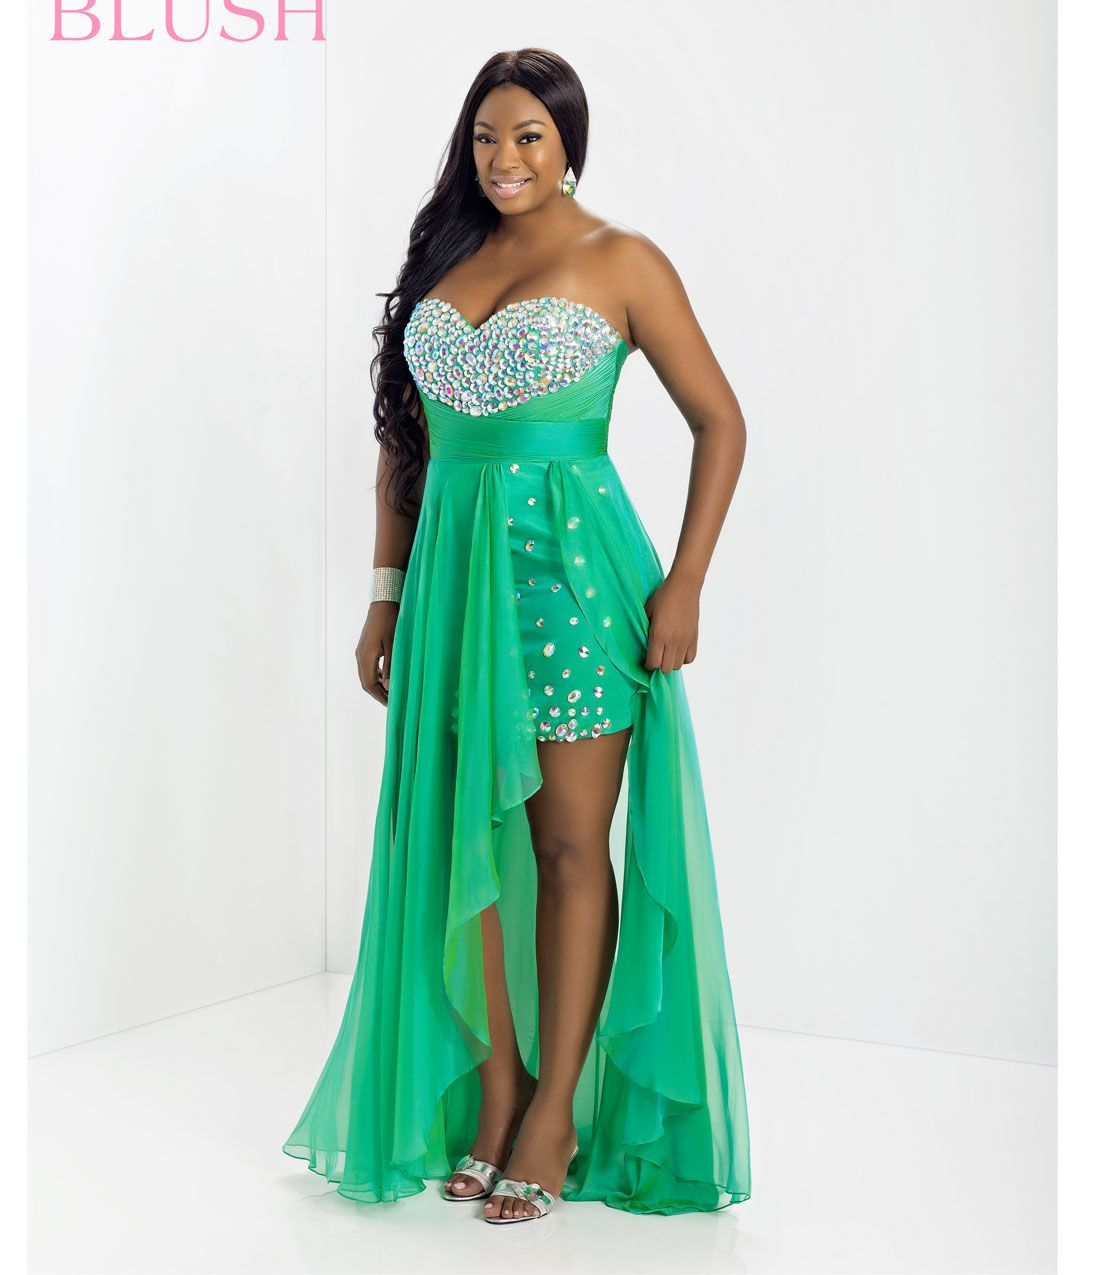 too by blush plus size 2014 prom dresses - spring green beaded